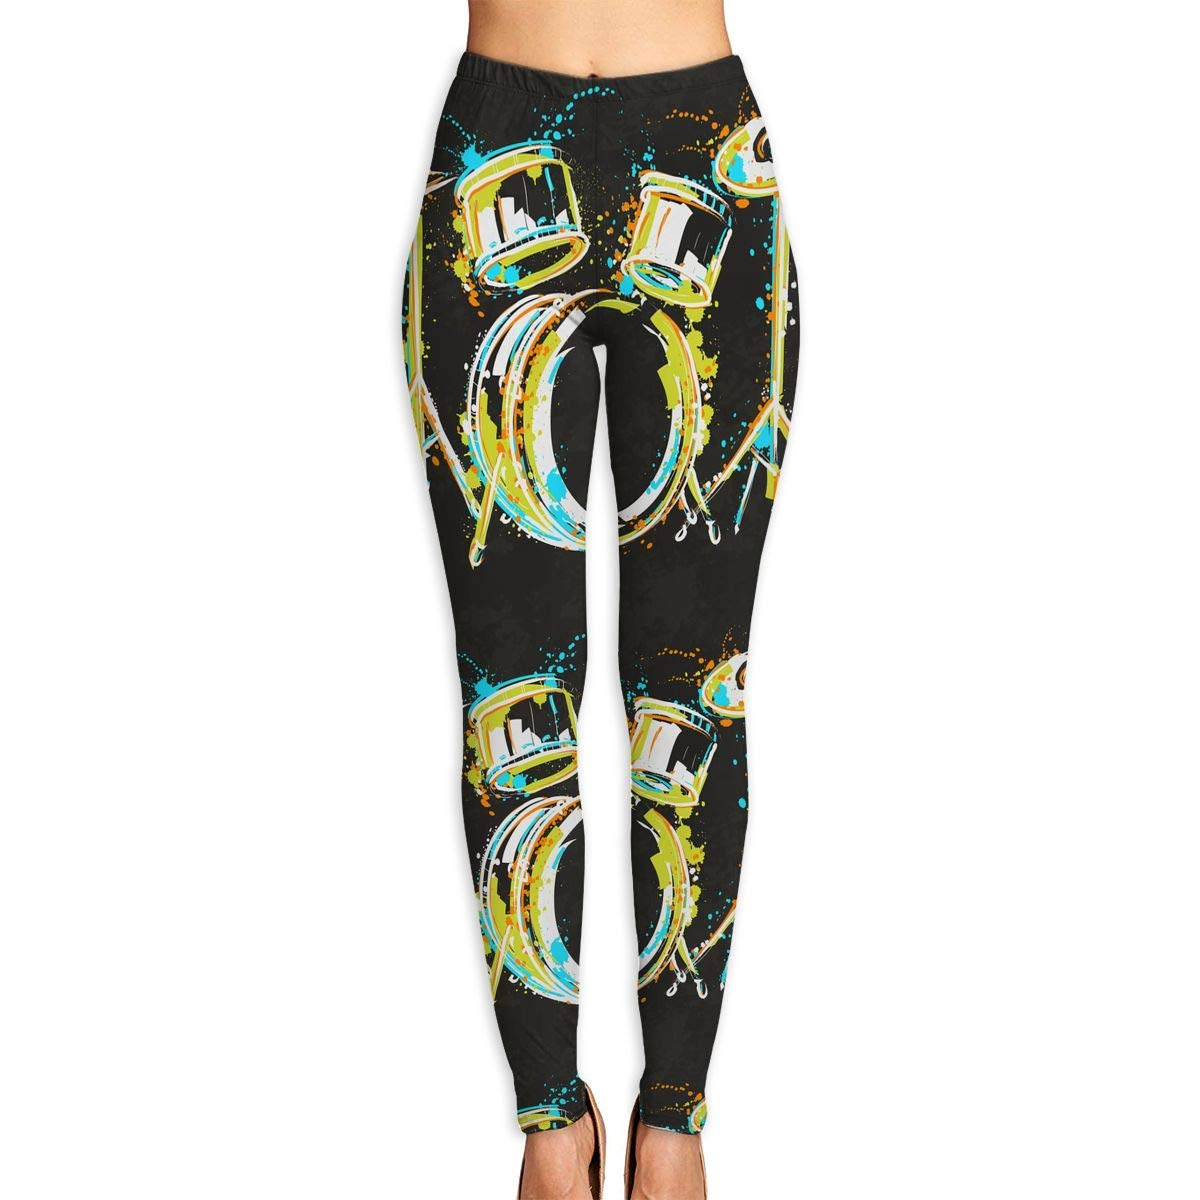 Ayf-S478 Vintage Abstract Drum Womens Yoga Pants Sports Workout Leggings Athletic Tight Pants Fitness Power Stretch Yoga Leggings Tummy Control